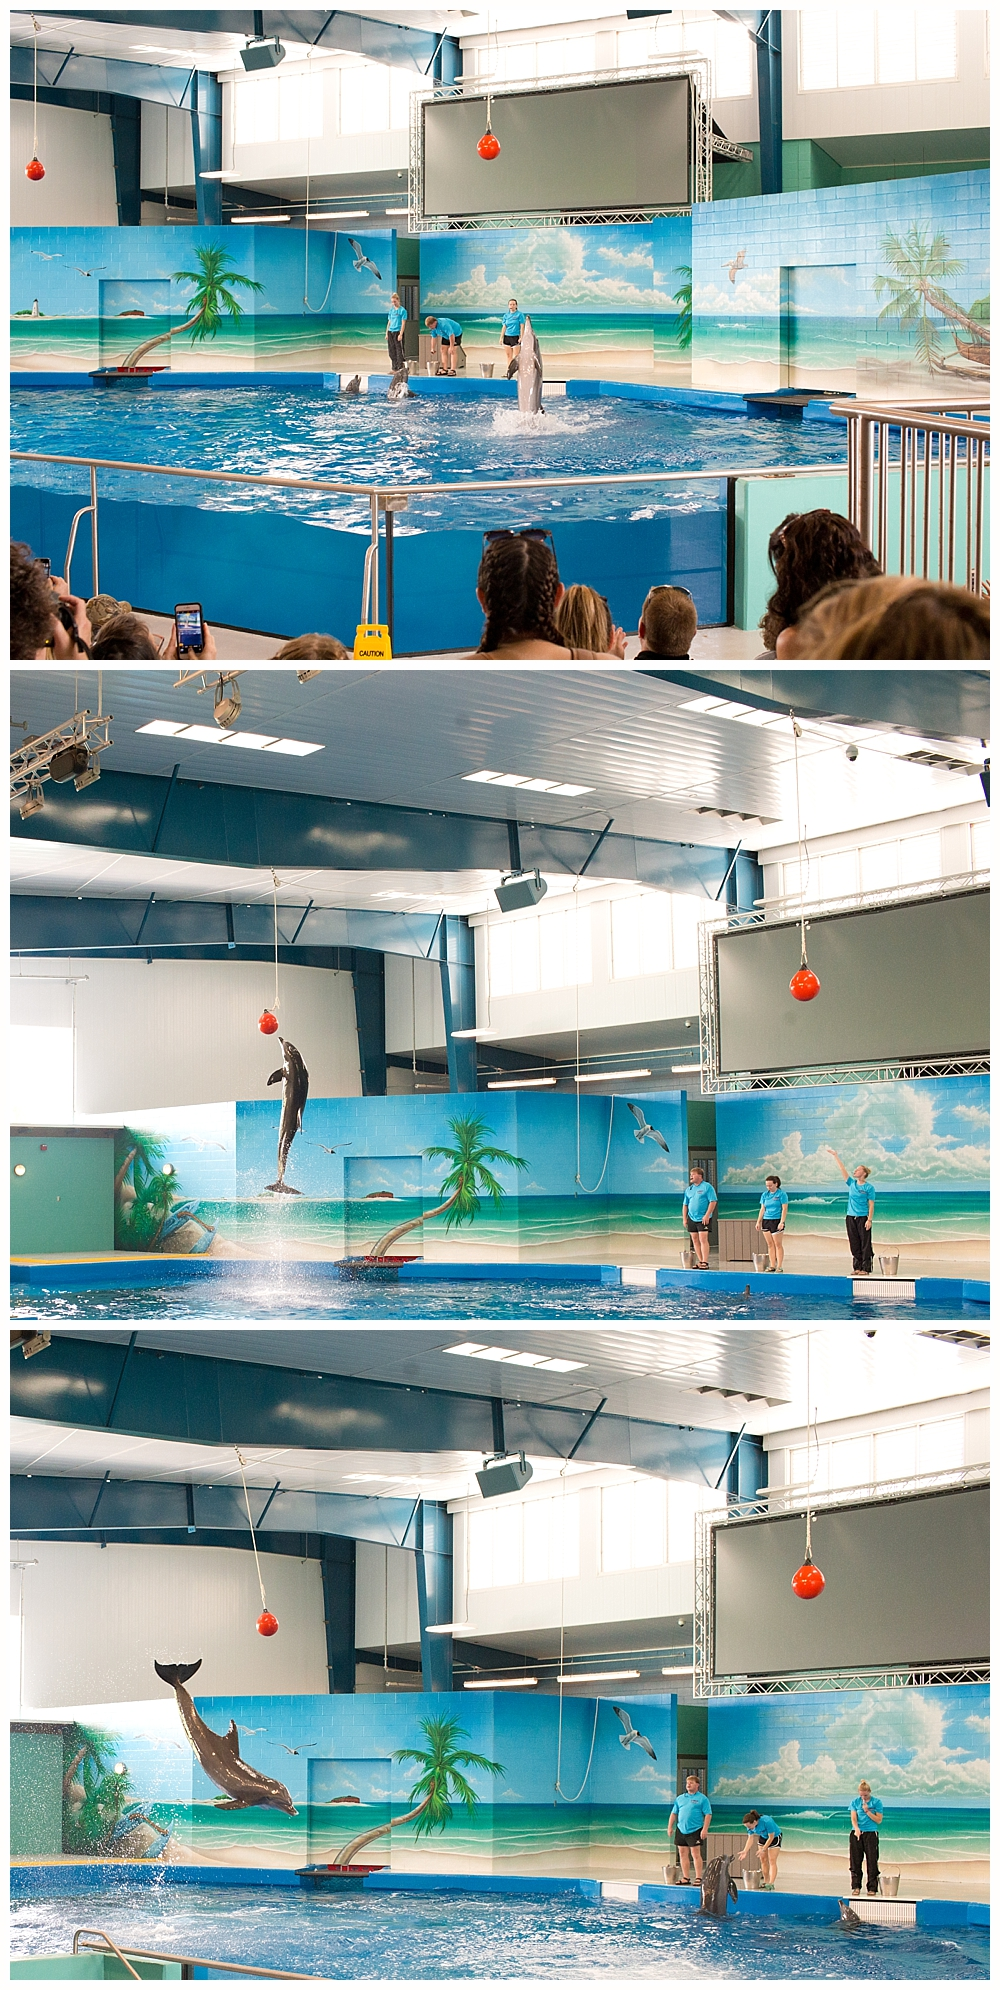 dolphin show at Ocean Adventures Marine Park in Gulfport, MS